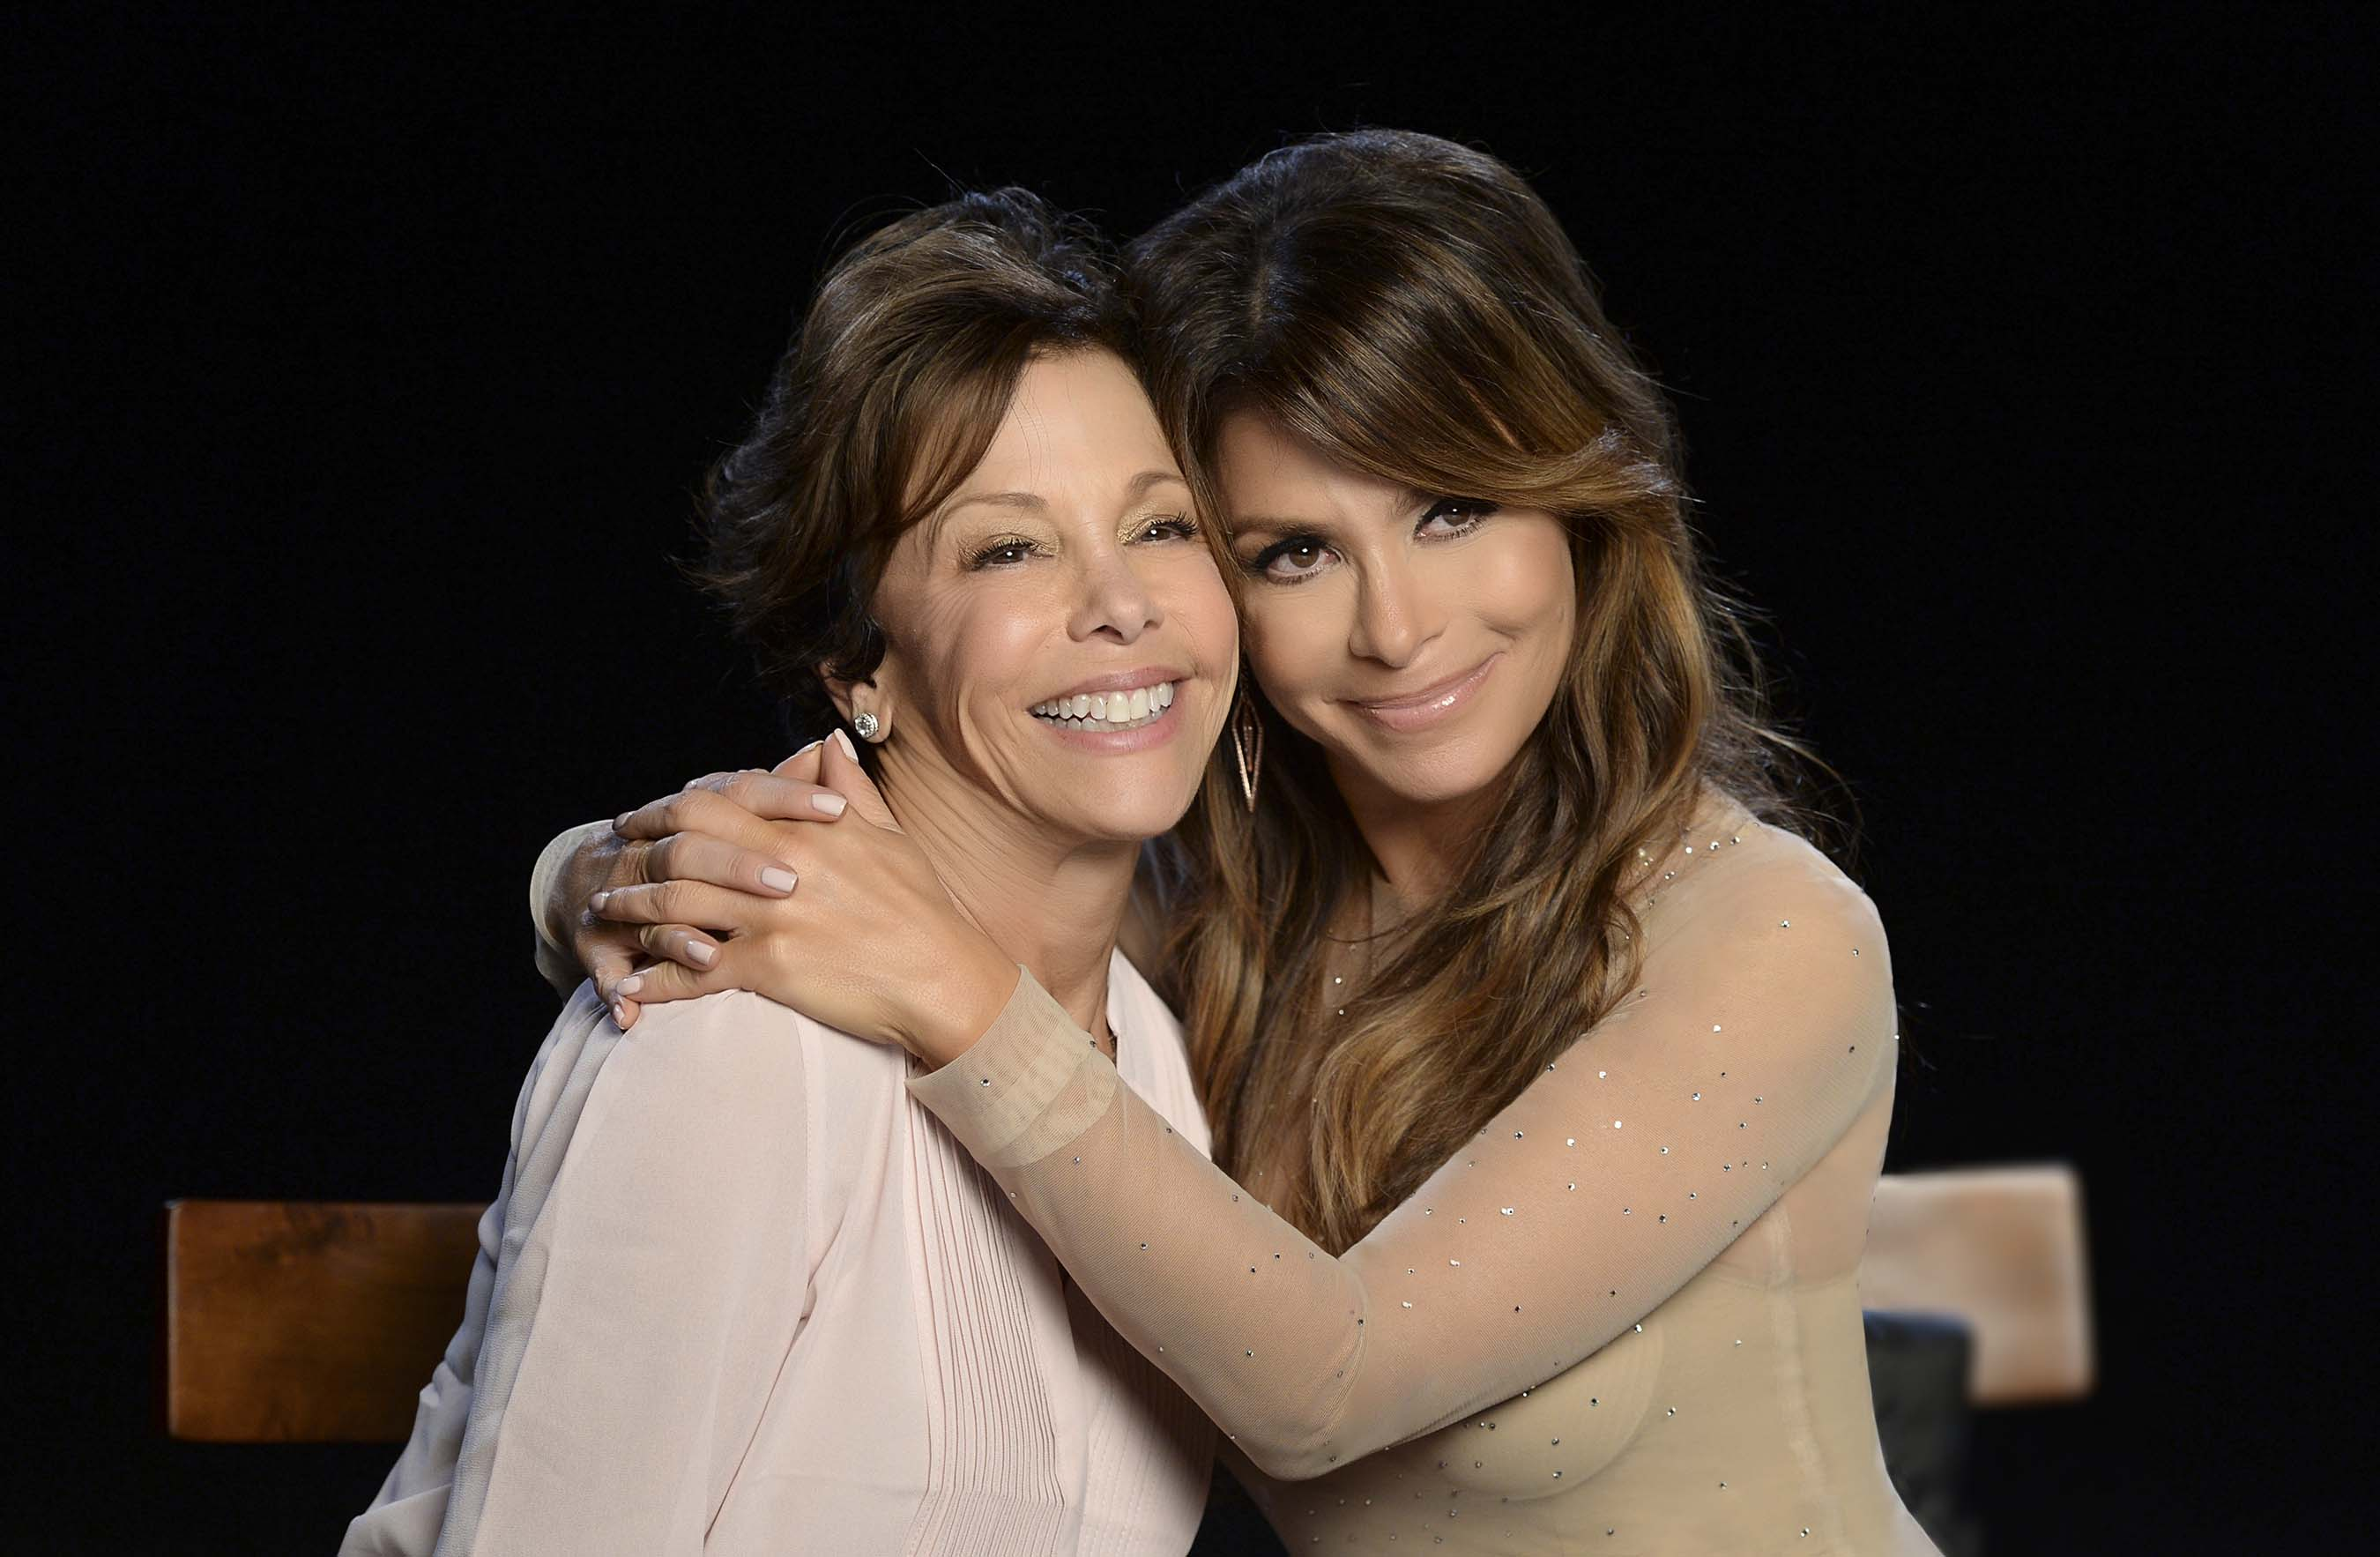 Paula Abdul on set with sister and breast cancer survivor Wendy Emkin at Quixote Studios on September 5, 2014 in Los Angeles to launch the Avon Foundation's #CheckYourself for Breast Cancer campaign. To learn more about the #CheckYourself campaign visit www.avonfoundation.org/checkyourself.